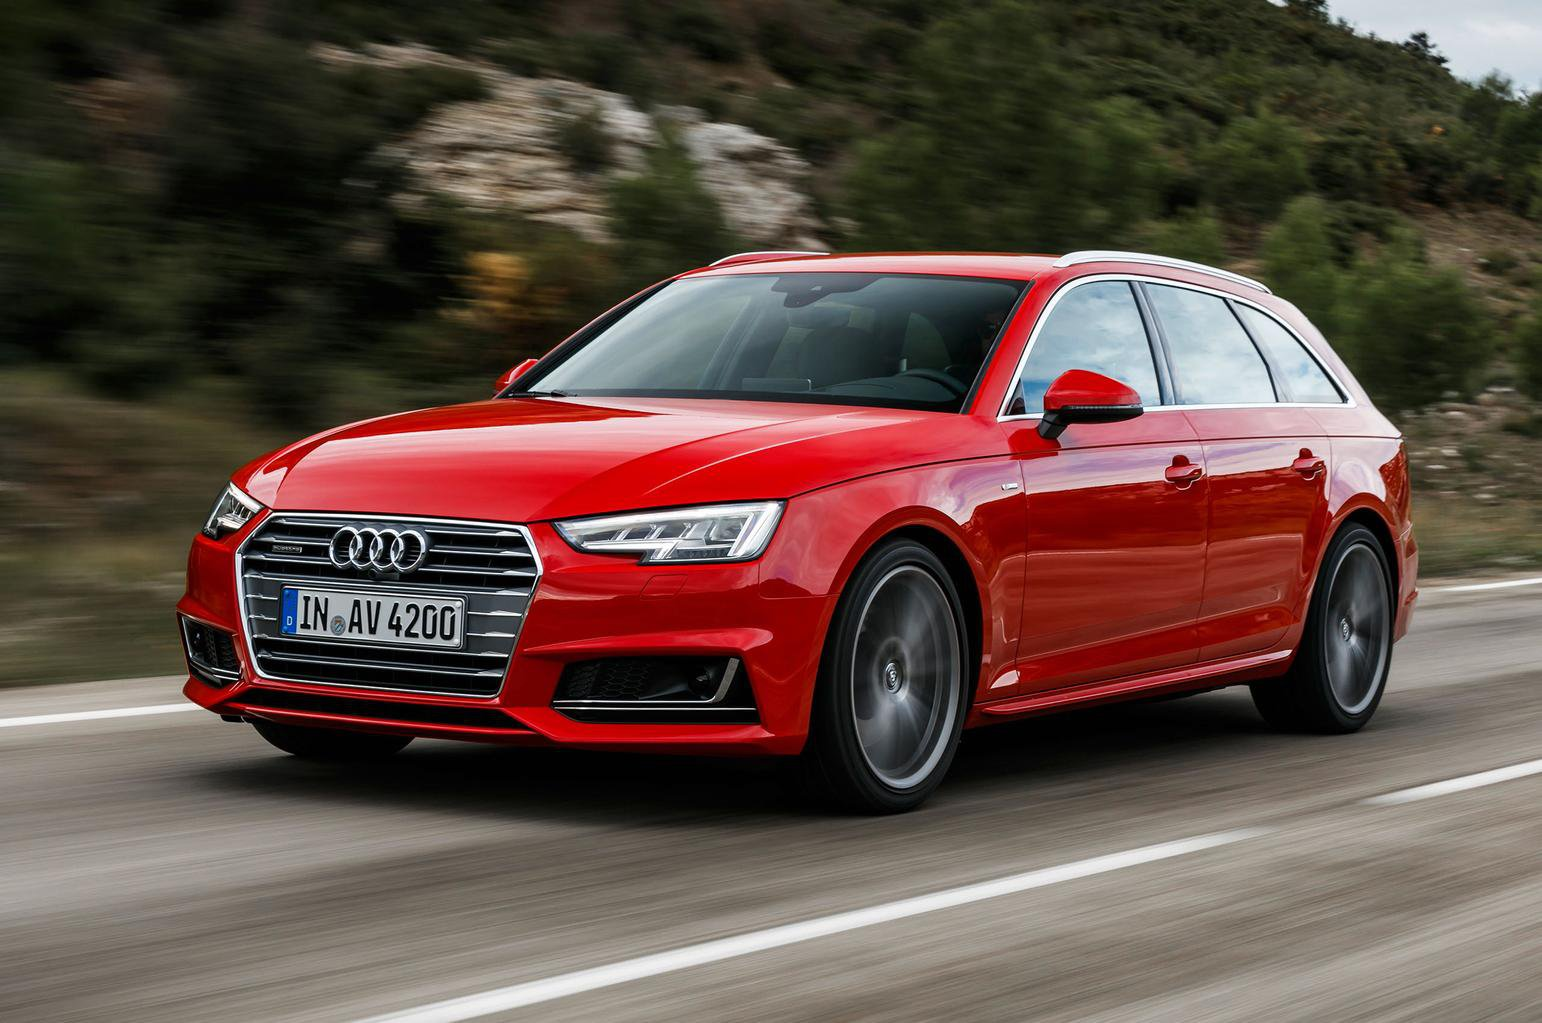 2015 Audi A4 Avant 2.0 TDI 190 review